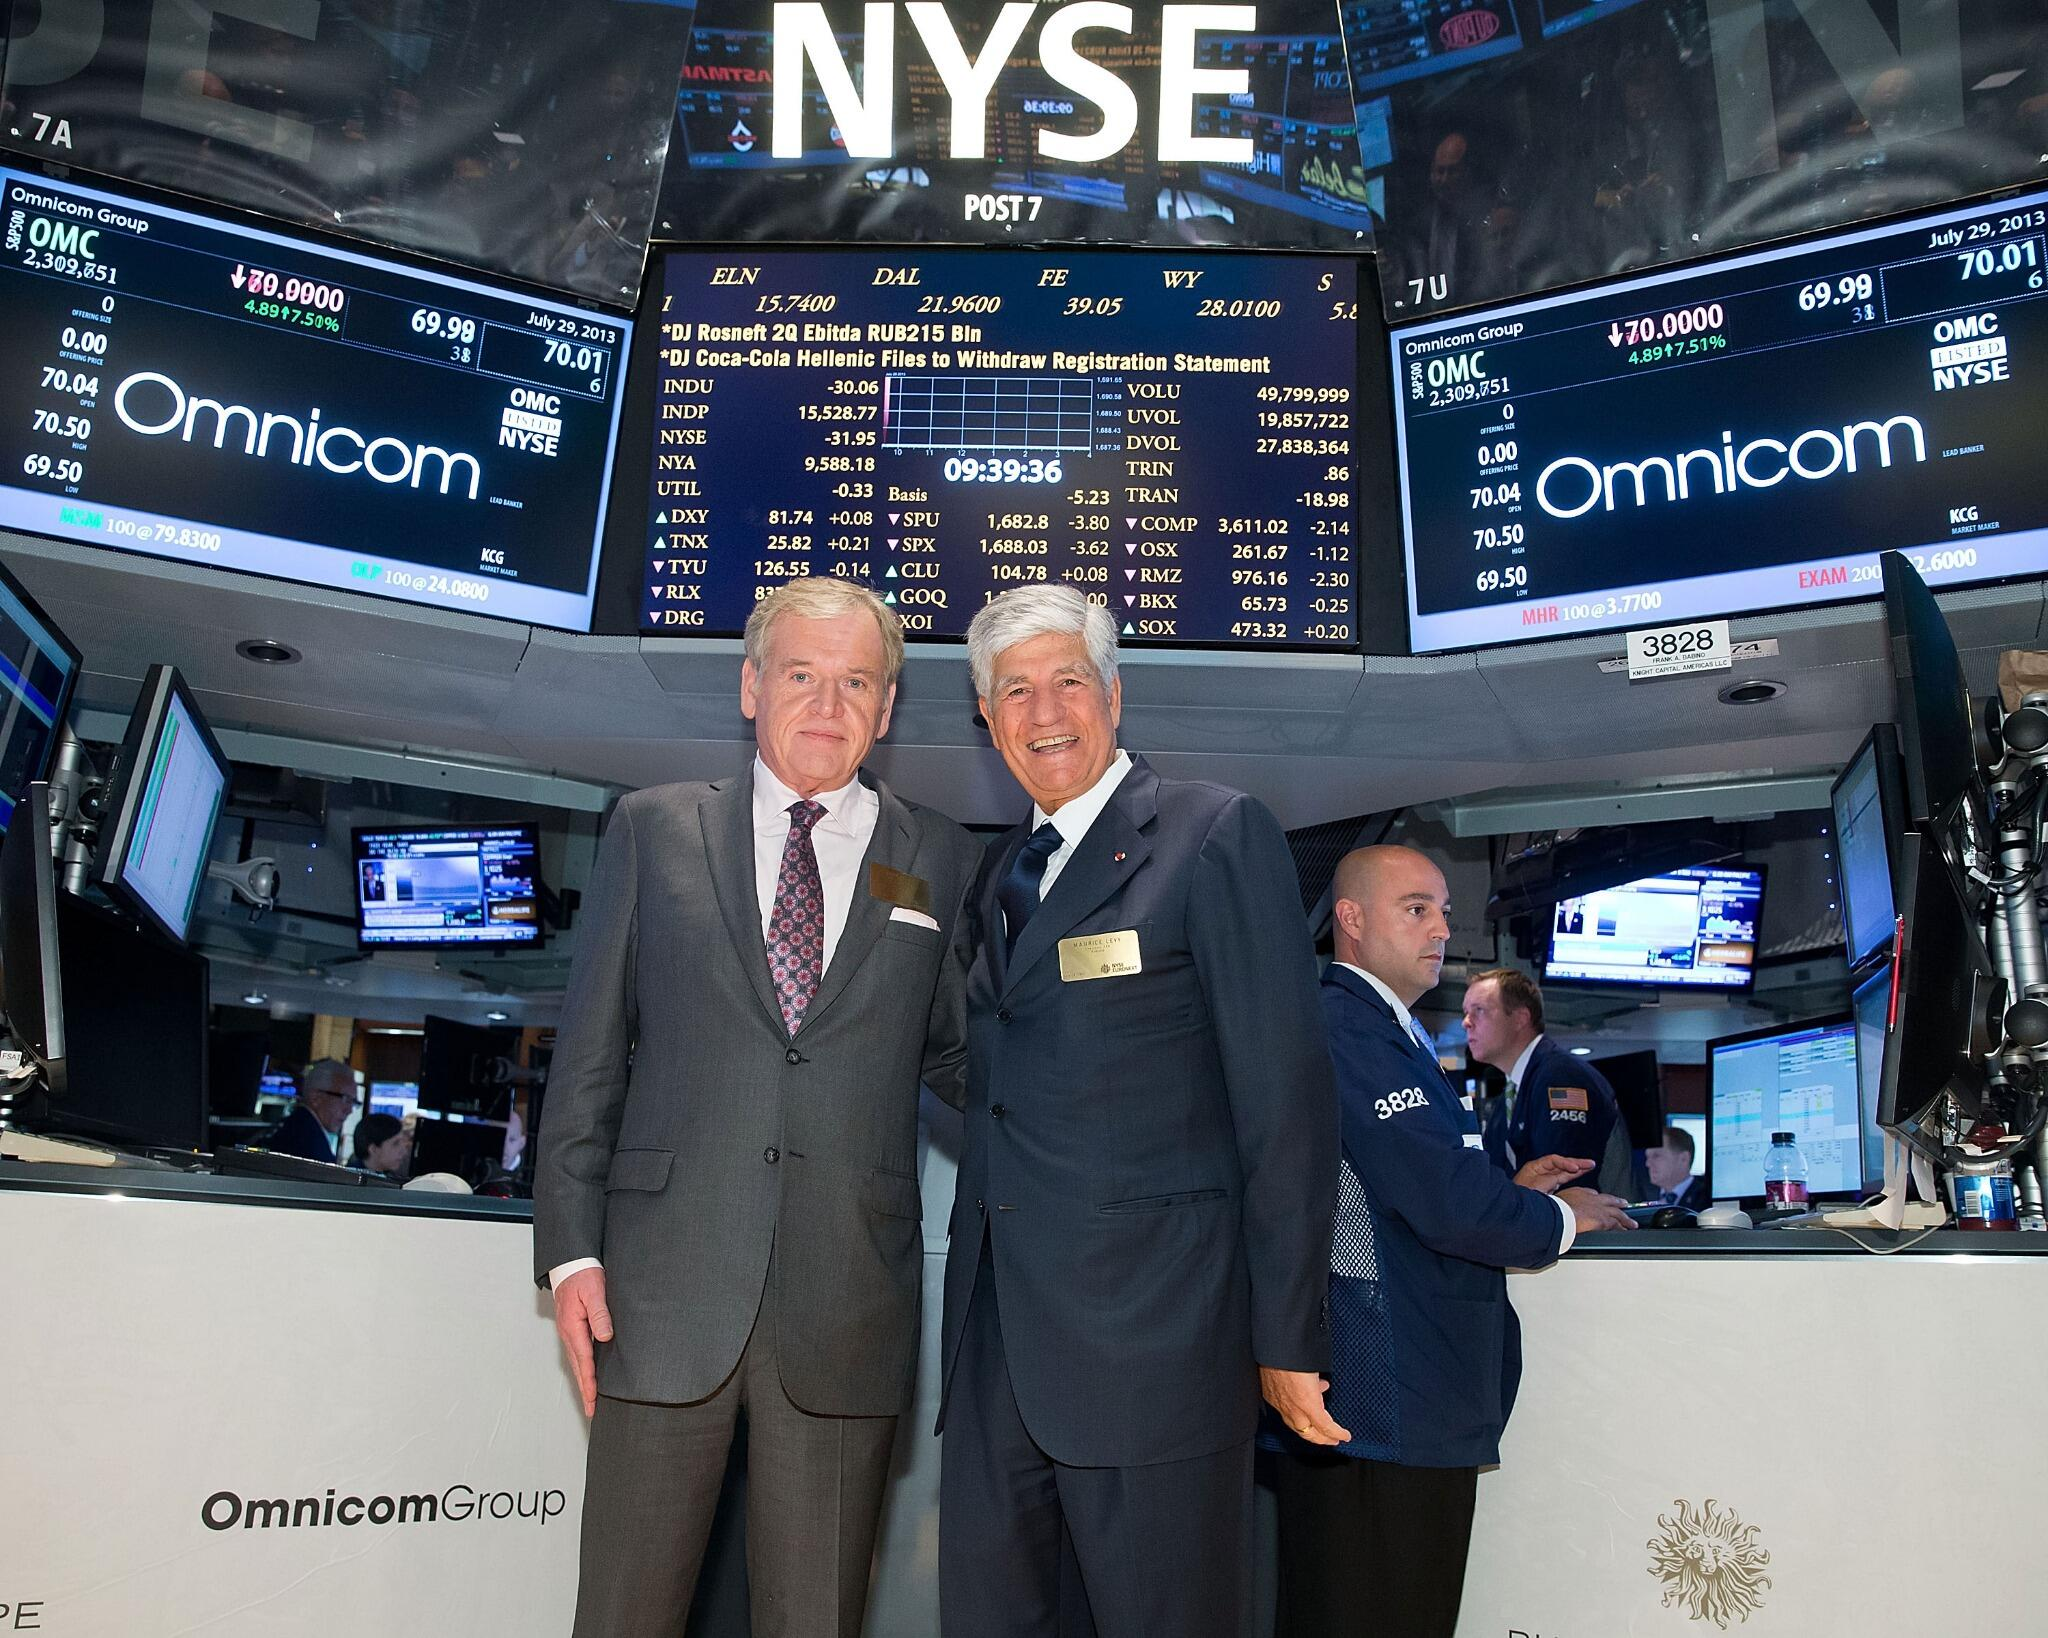 #PublicisOmnicom #MauriceLévy and John Wren at #NYSE http://t.co/b1jo1a1wgf